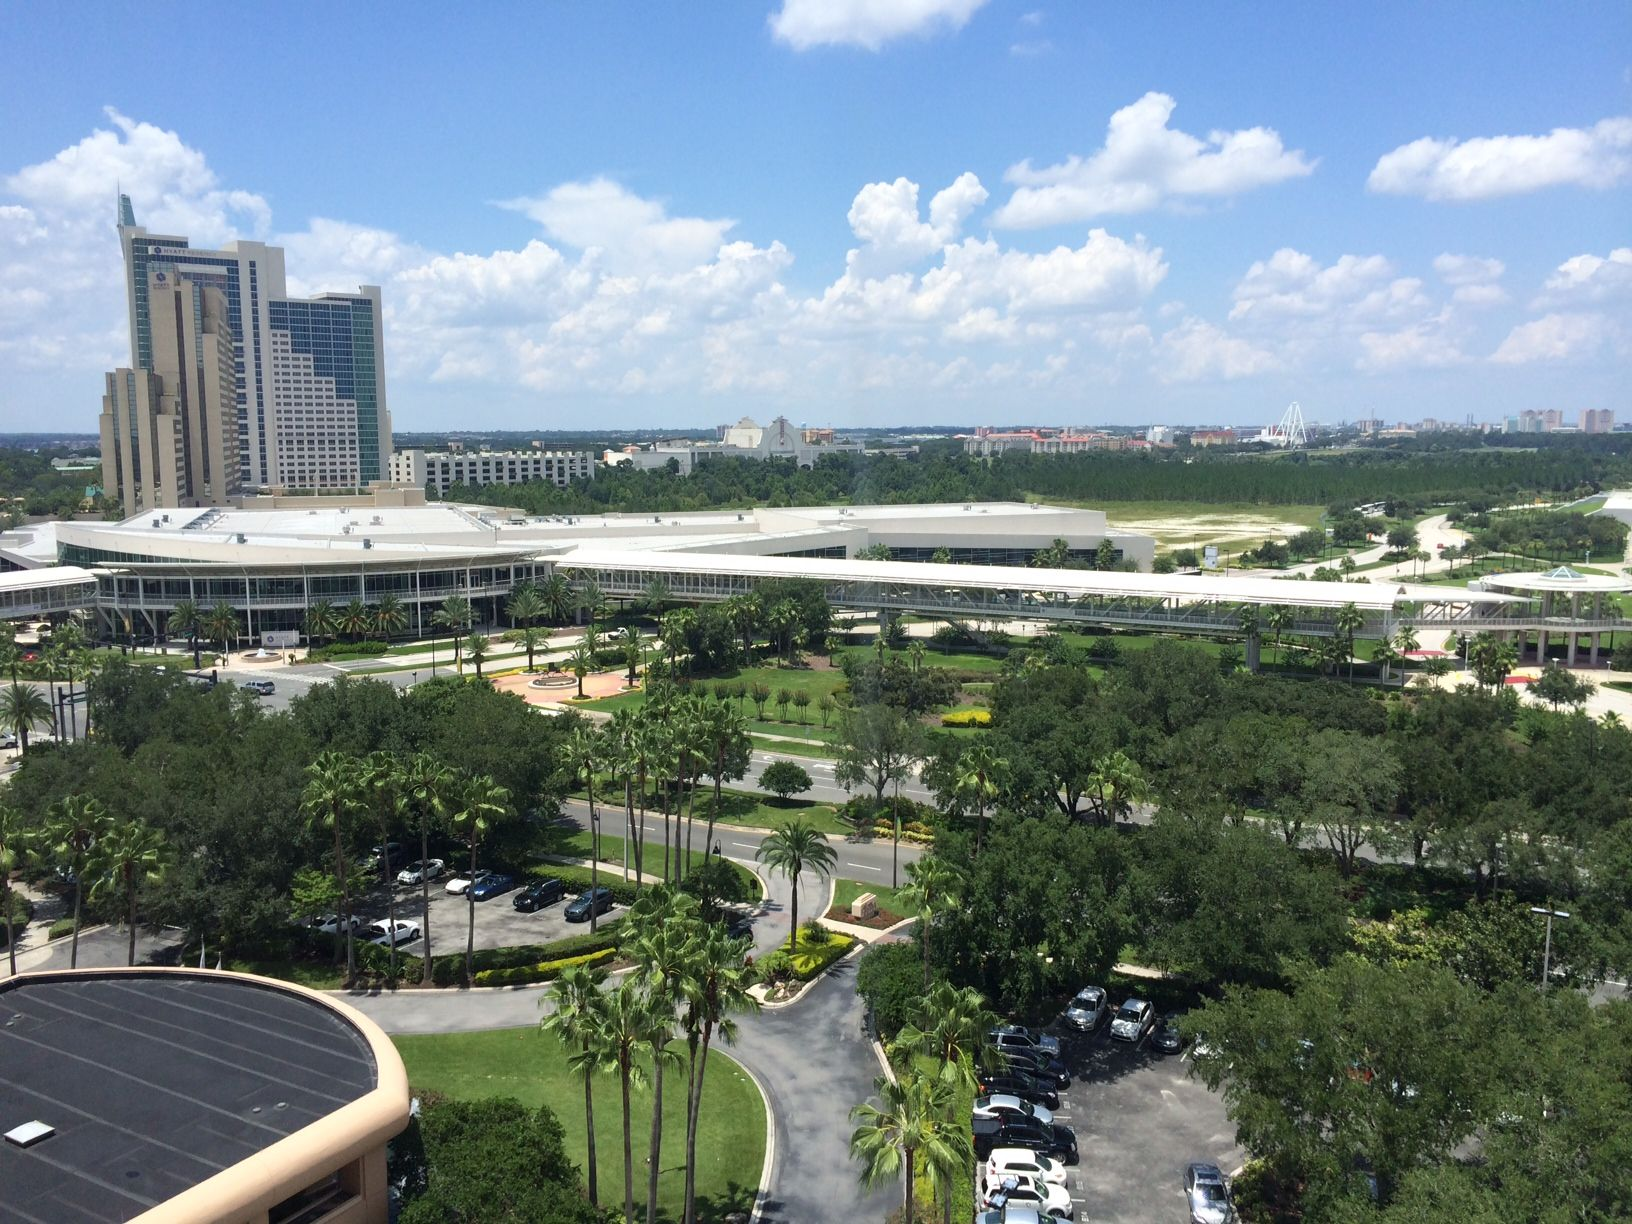 Hotel view in Orlando, Florida for trade show event during July 24-25, 2014.